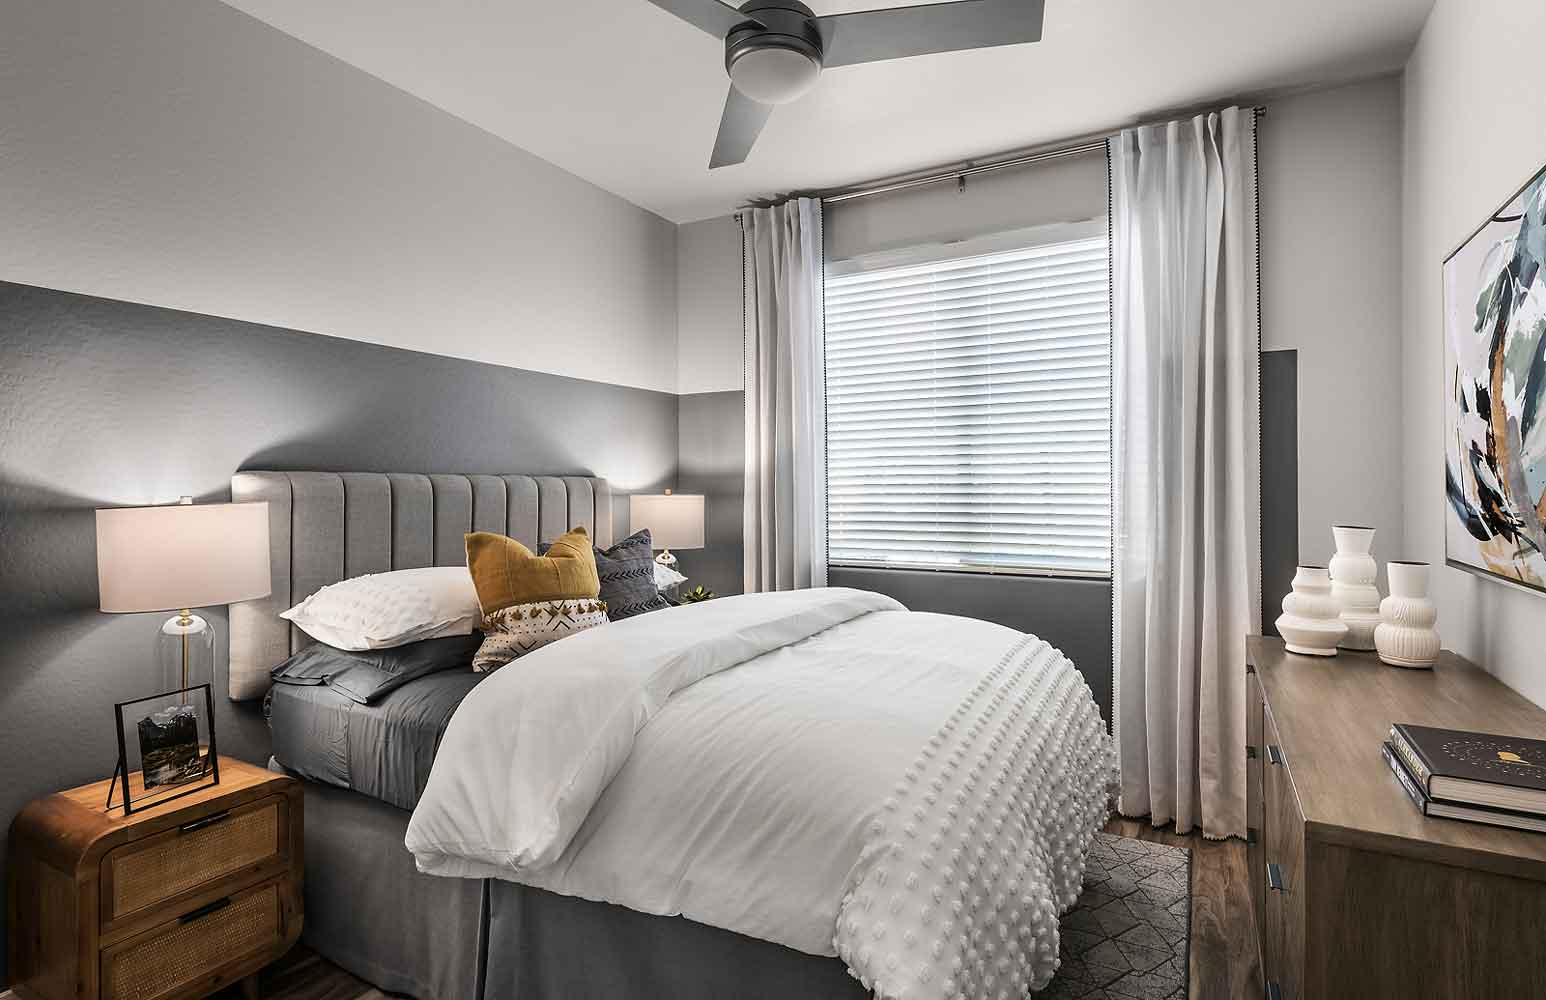 Simplified Rental Homes at Village at Olive Marketplace Apartments in Glendale, AZ